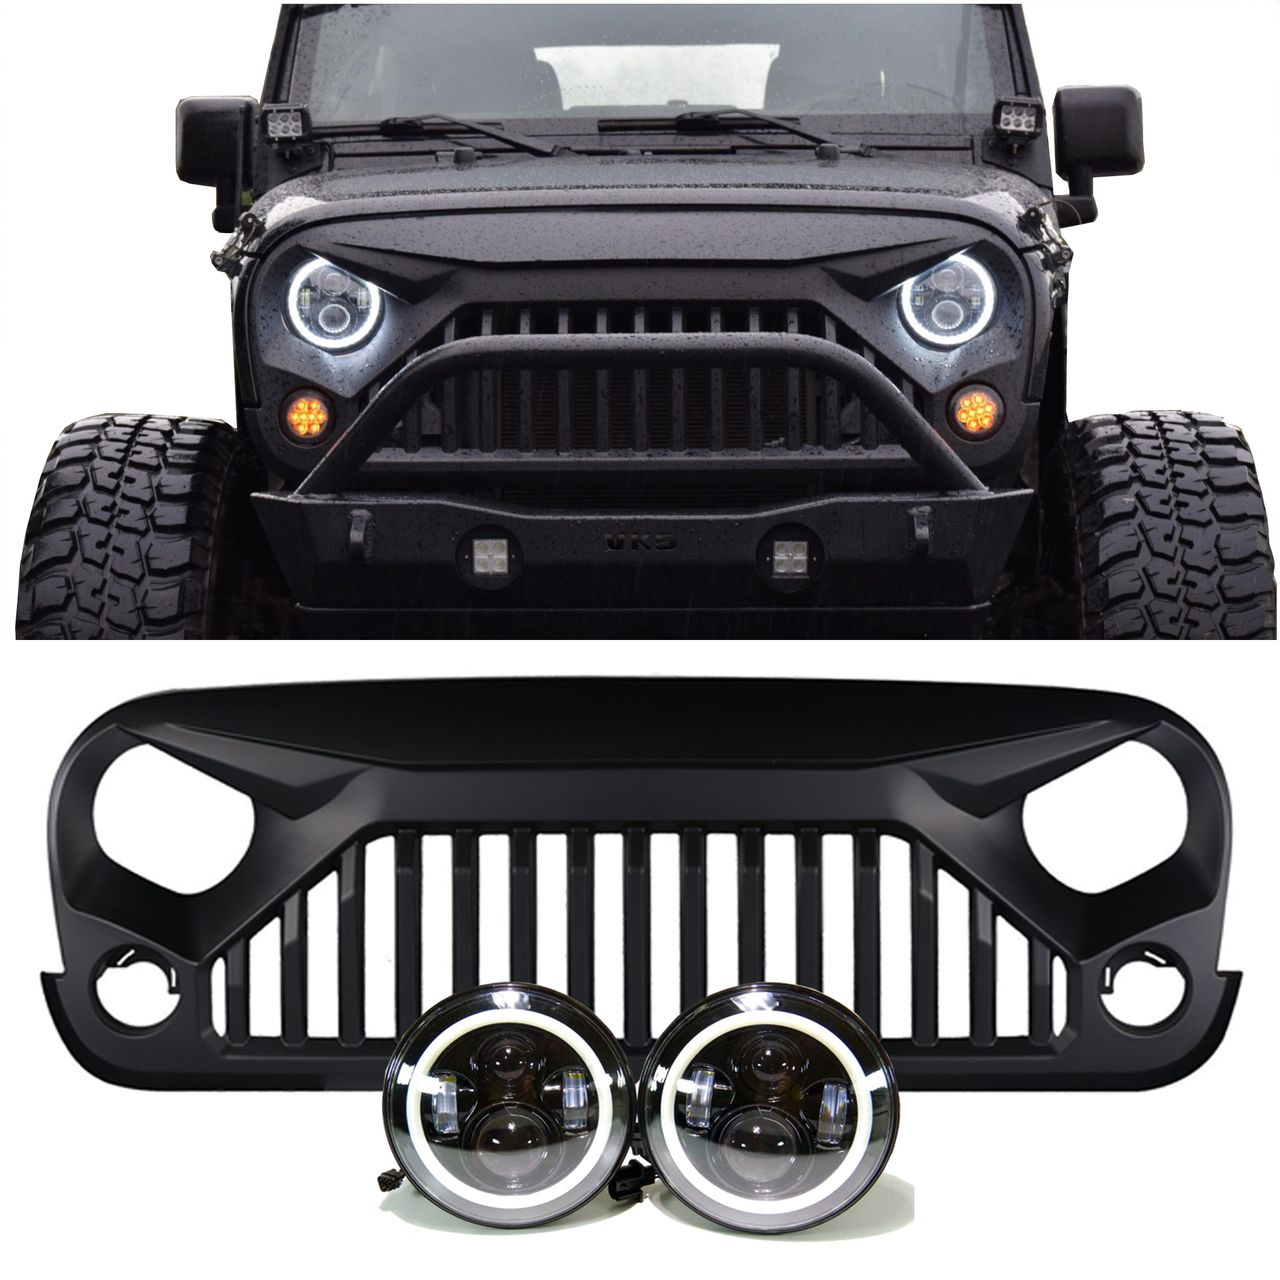 Jeep Jk Projector Headlights Halo Vader Grille Combo Pack Leds4less Jeep Wrangler Accessories Jeep Wrangler Jeep Wrangler Grill